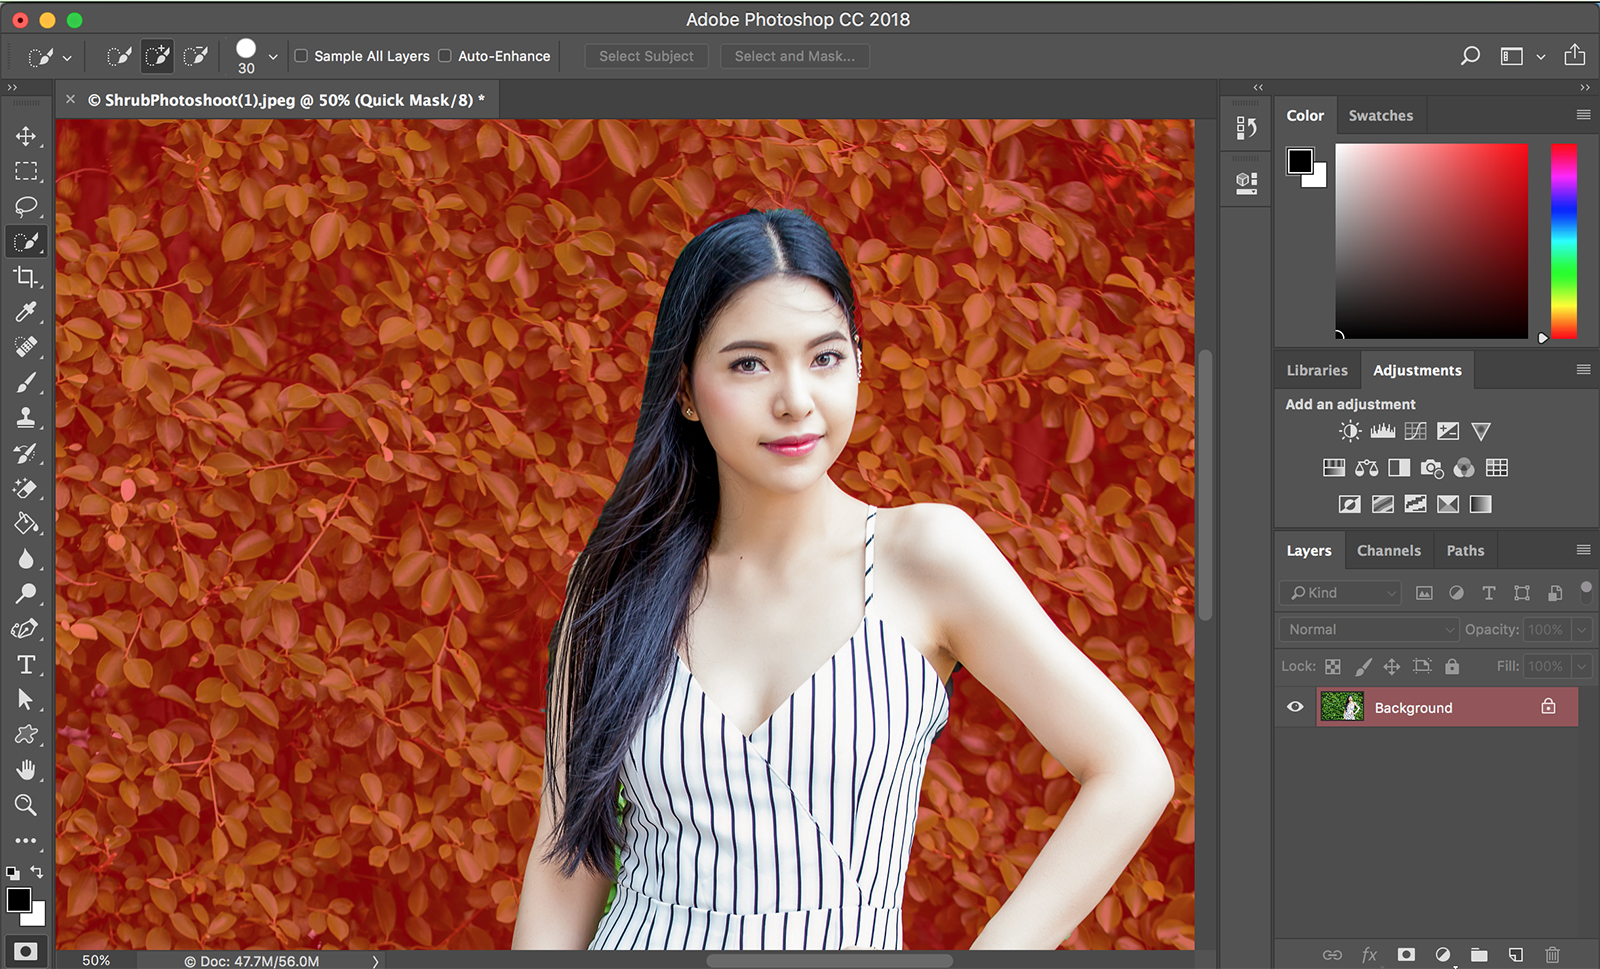 Top 5 new features in Photoshop CC - PhotoshopCAFE